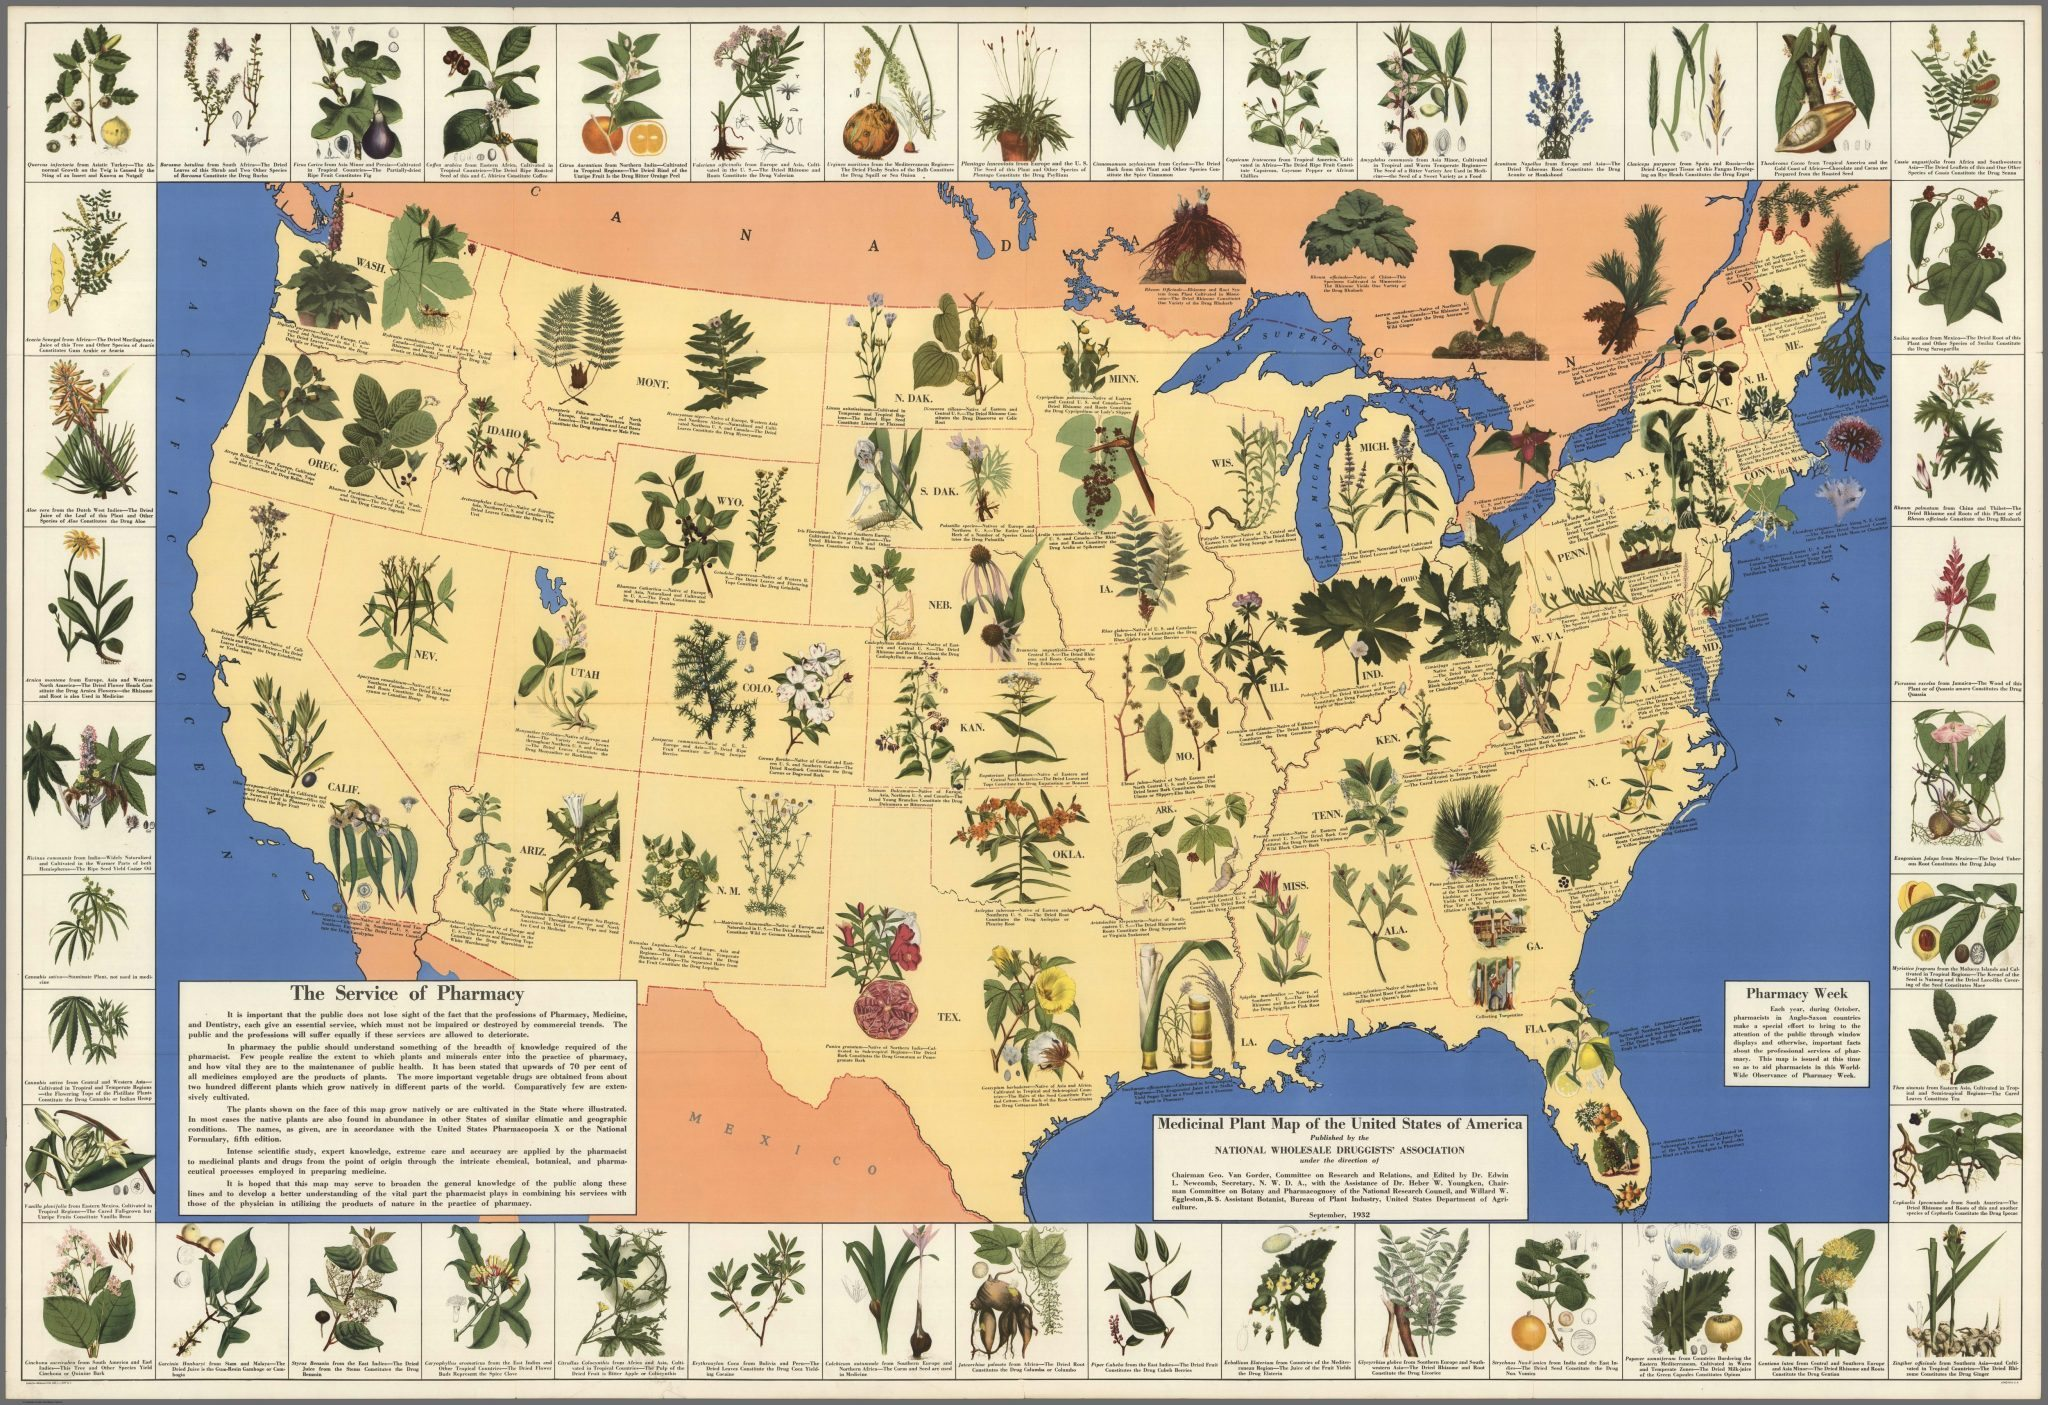 check out this amazing 1930s pharmacist map of herbal cures